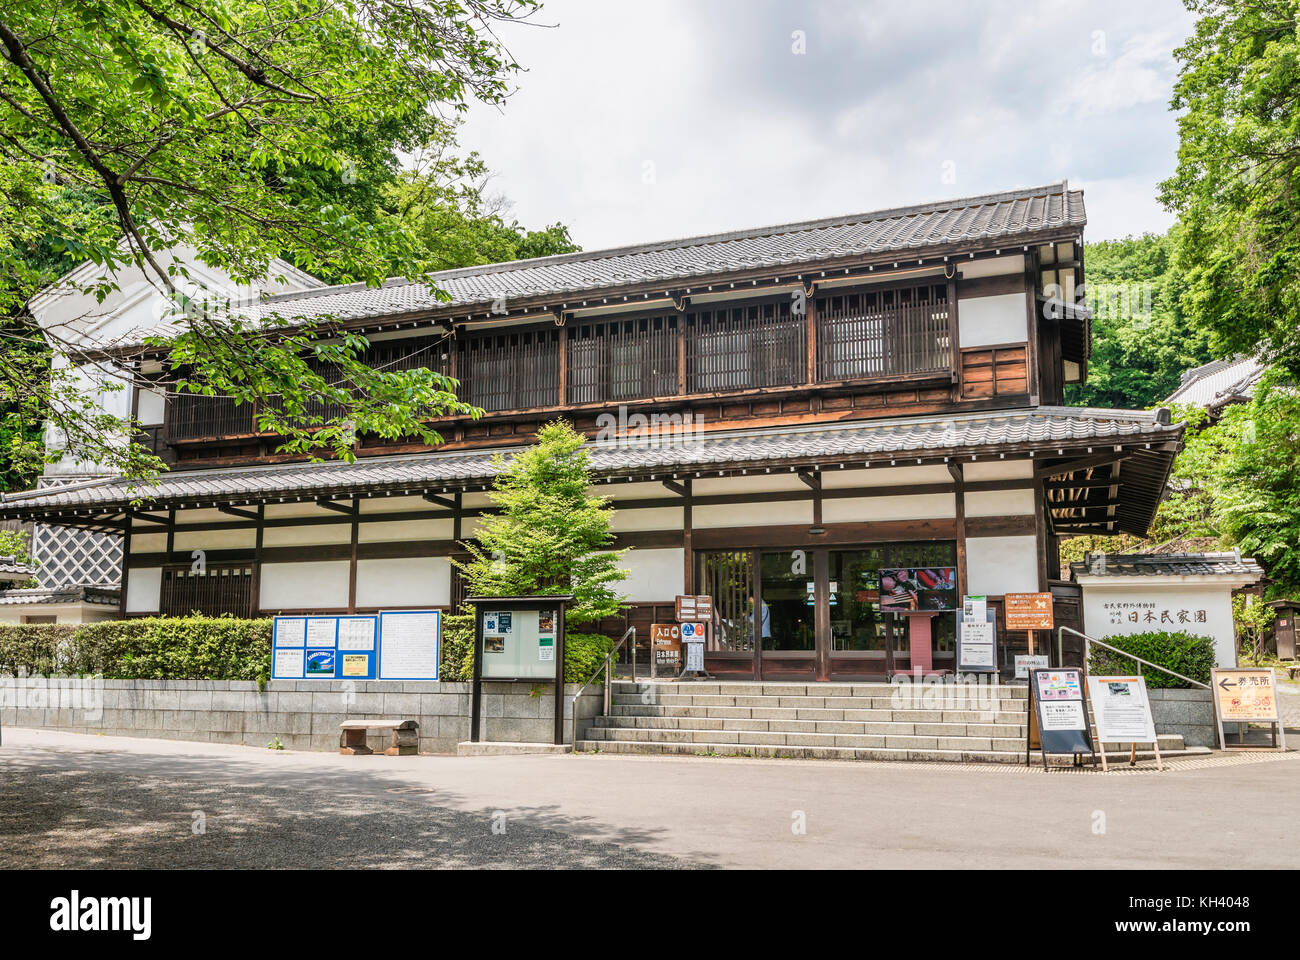 Entrance to Nihon Minkaen Folk House Museum, Kawasaki City, Kanagawa, Japan - Stock Image